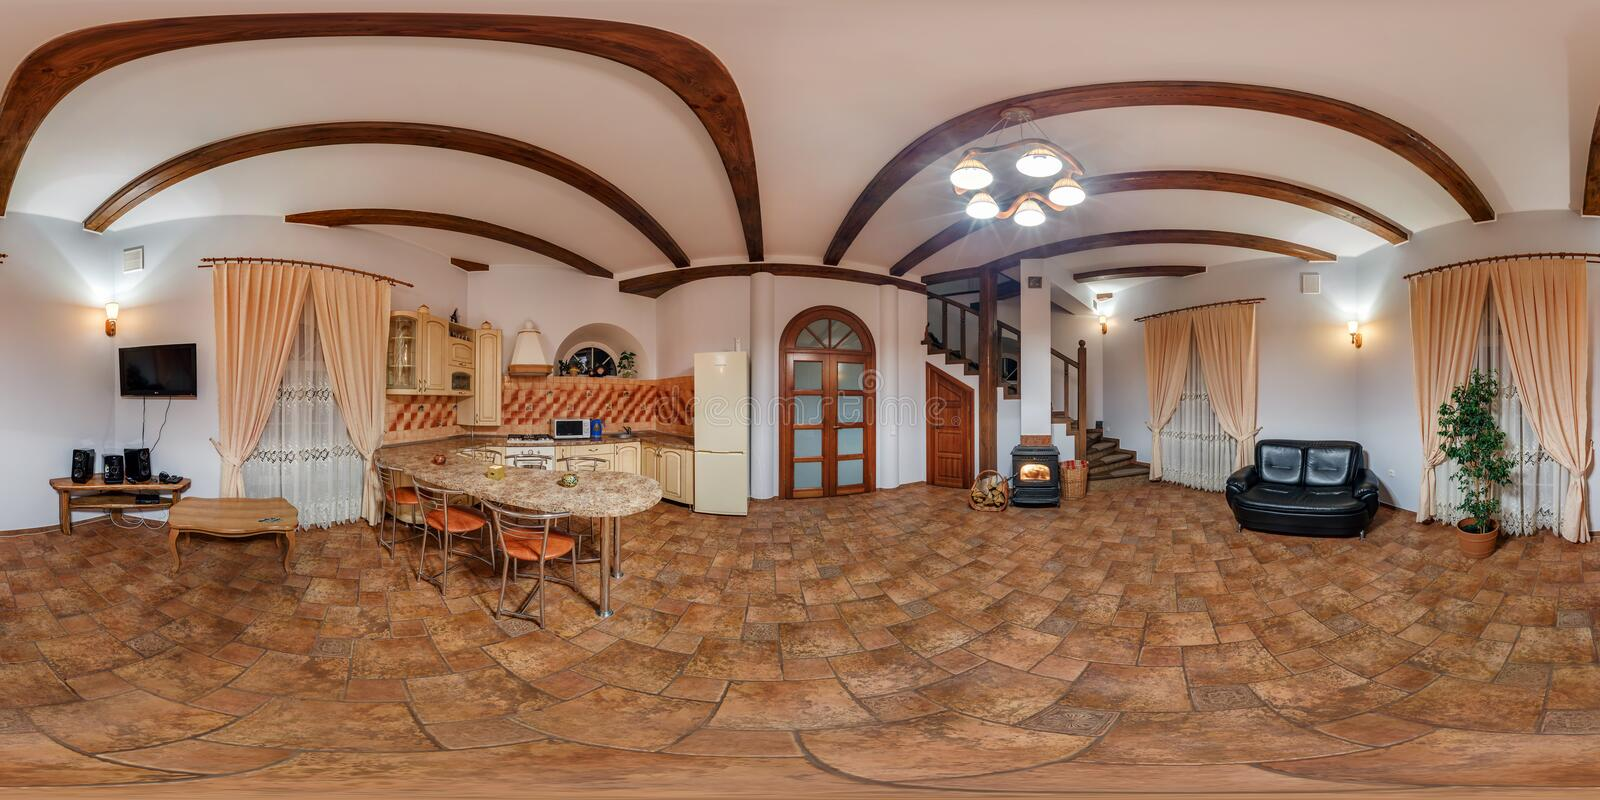 GRODNO, BELARUS - NOVEMBER 14, 2013: Full 360 degree panorama in equirectangular equidistant spherical projection in interier old. Vintage castle kitchen royalty free stock photography